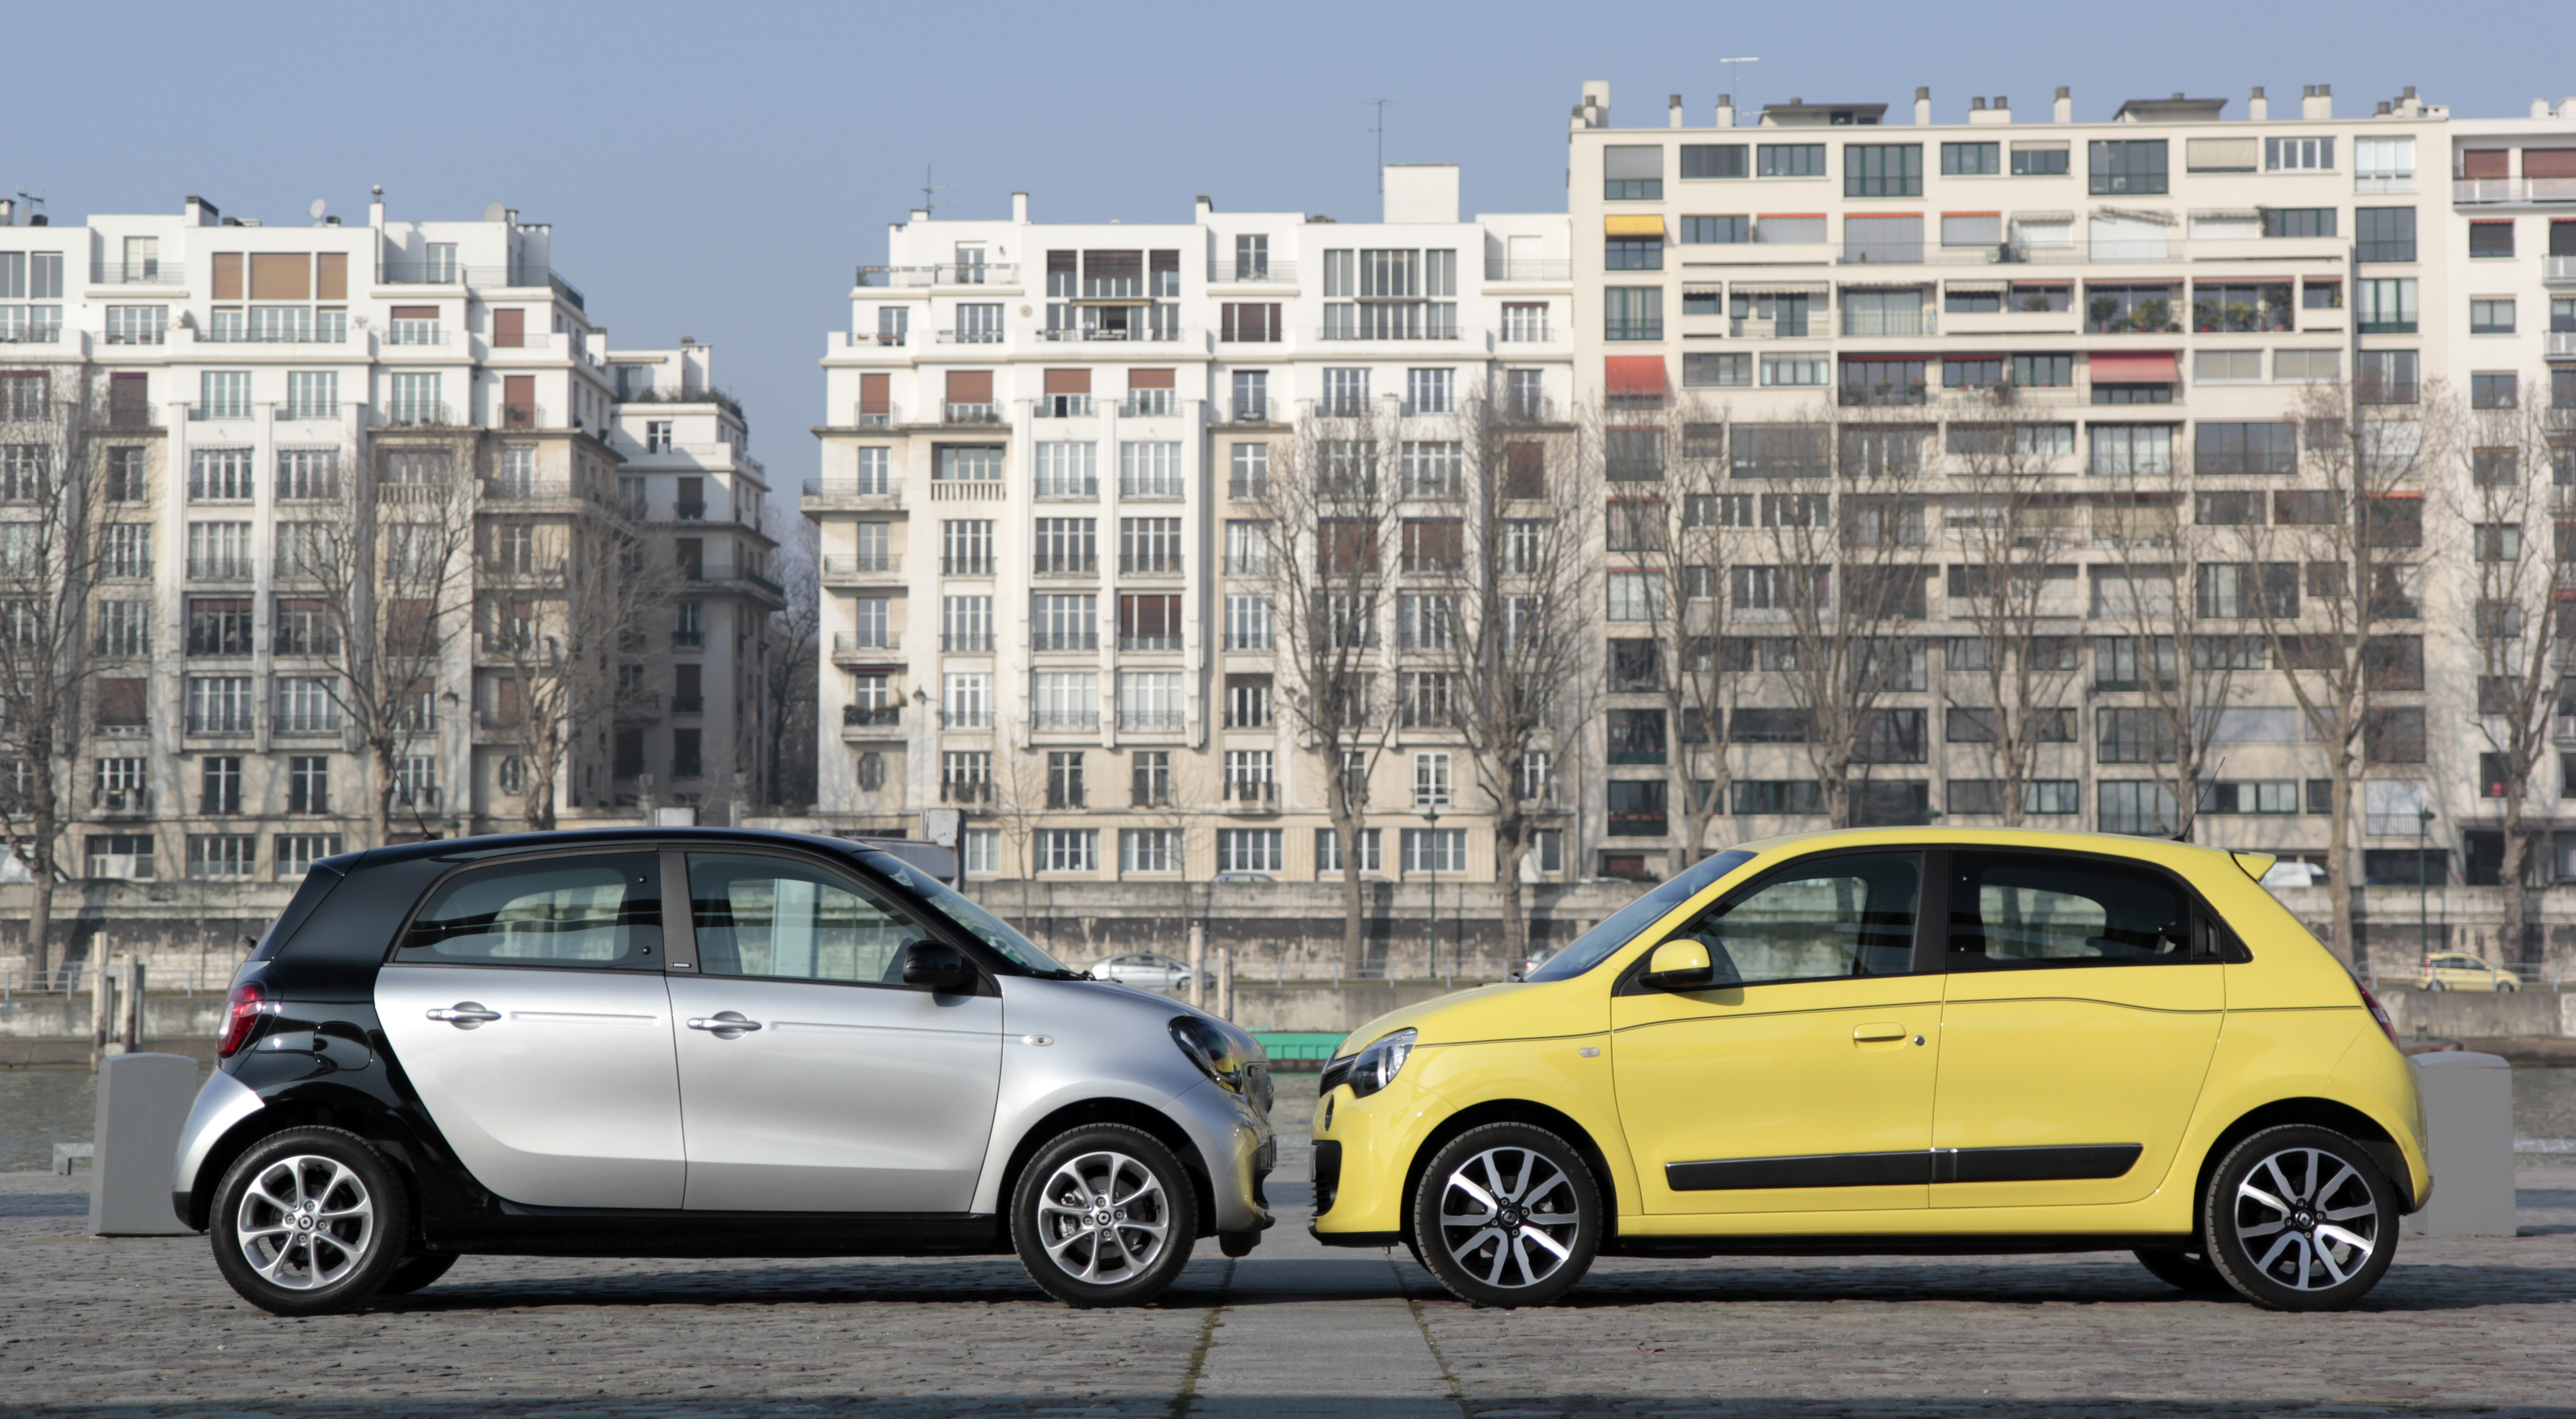 comparatif vid o renault twingo vs smart forfour dispute familiale. Black Bedroom Furniture Sets. Home Design Ideas